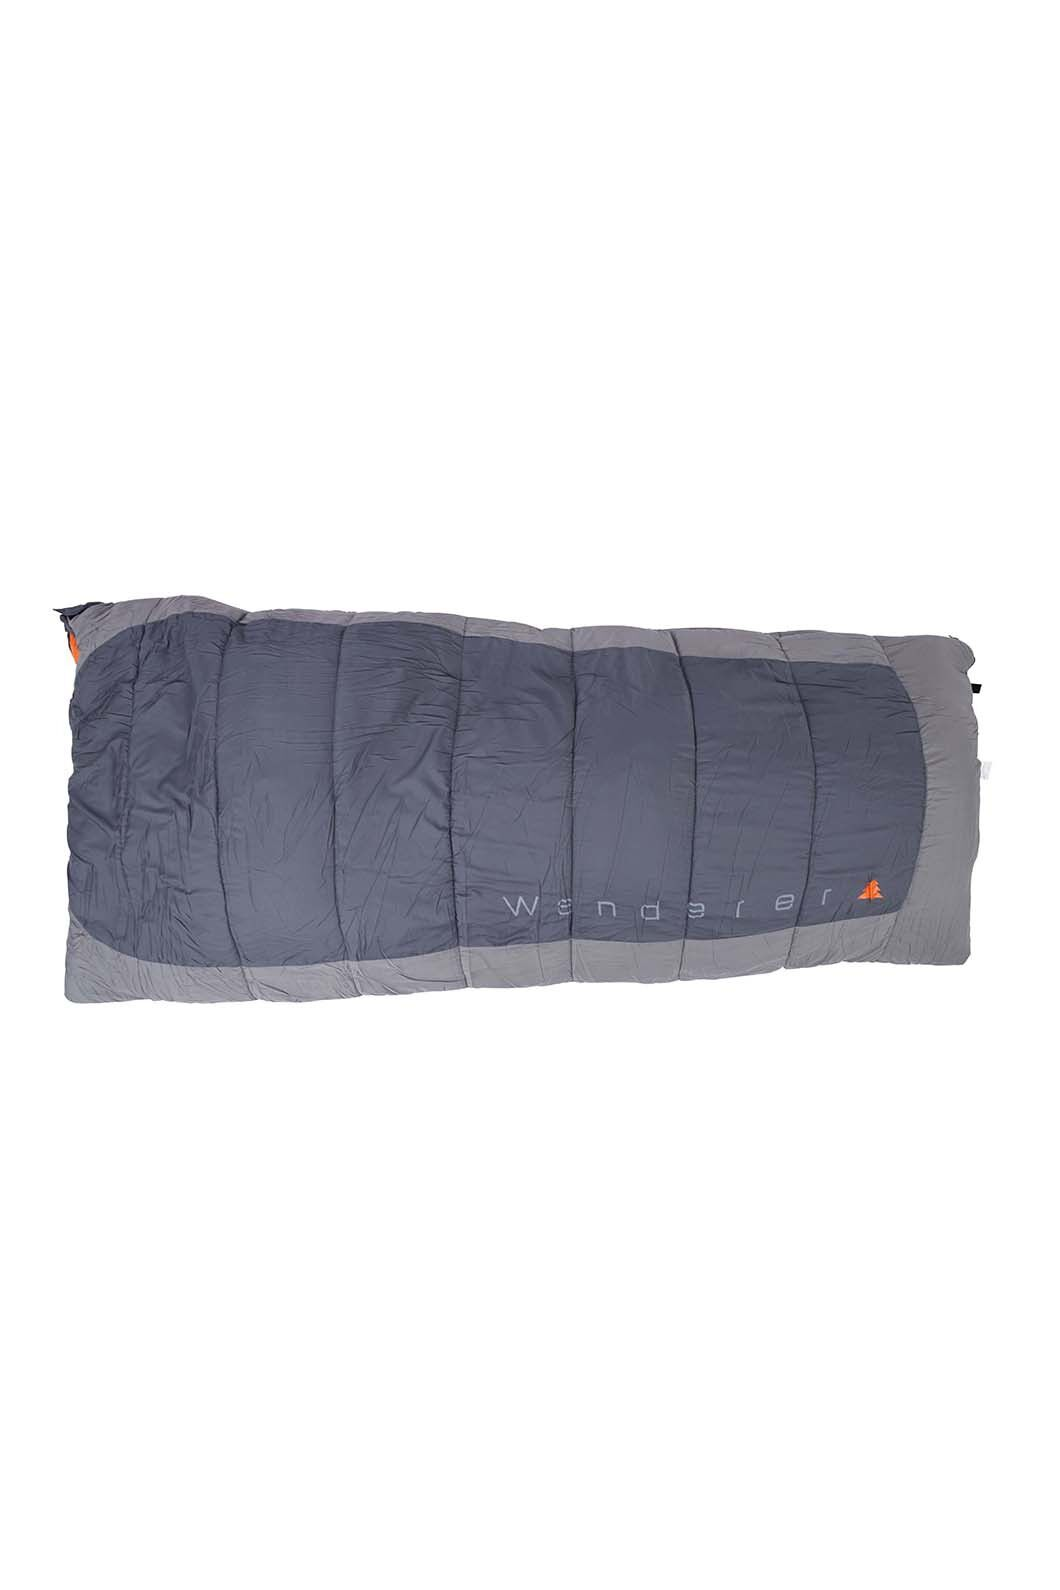 Wanderer FullFlame Camper Sleeping Bag, None, hi-res